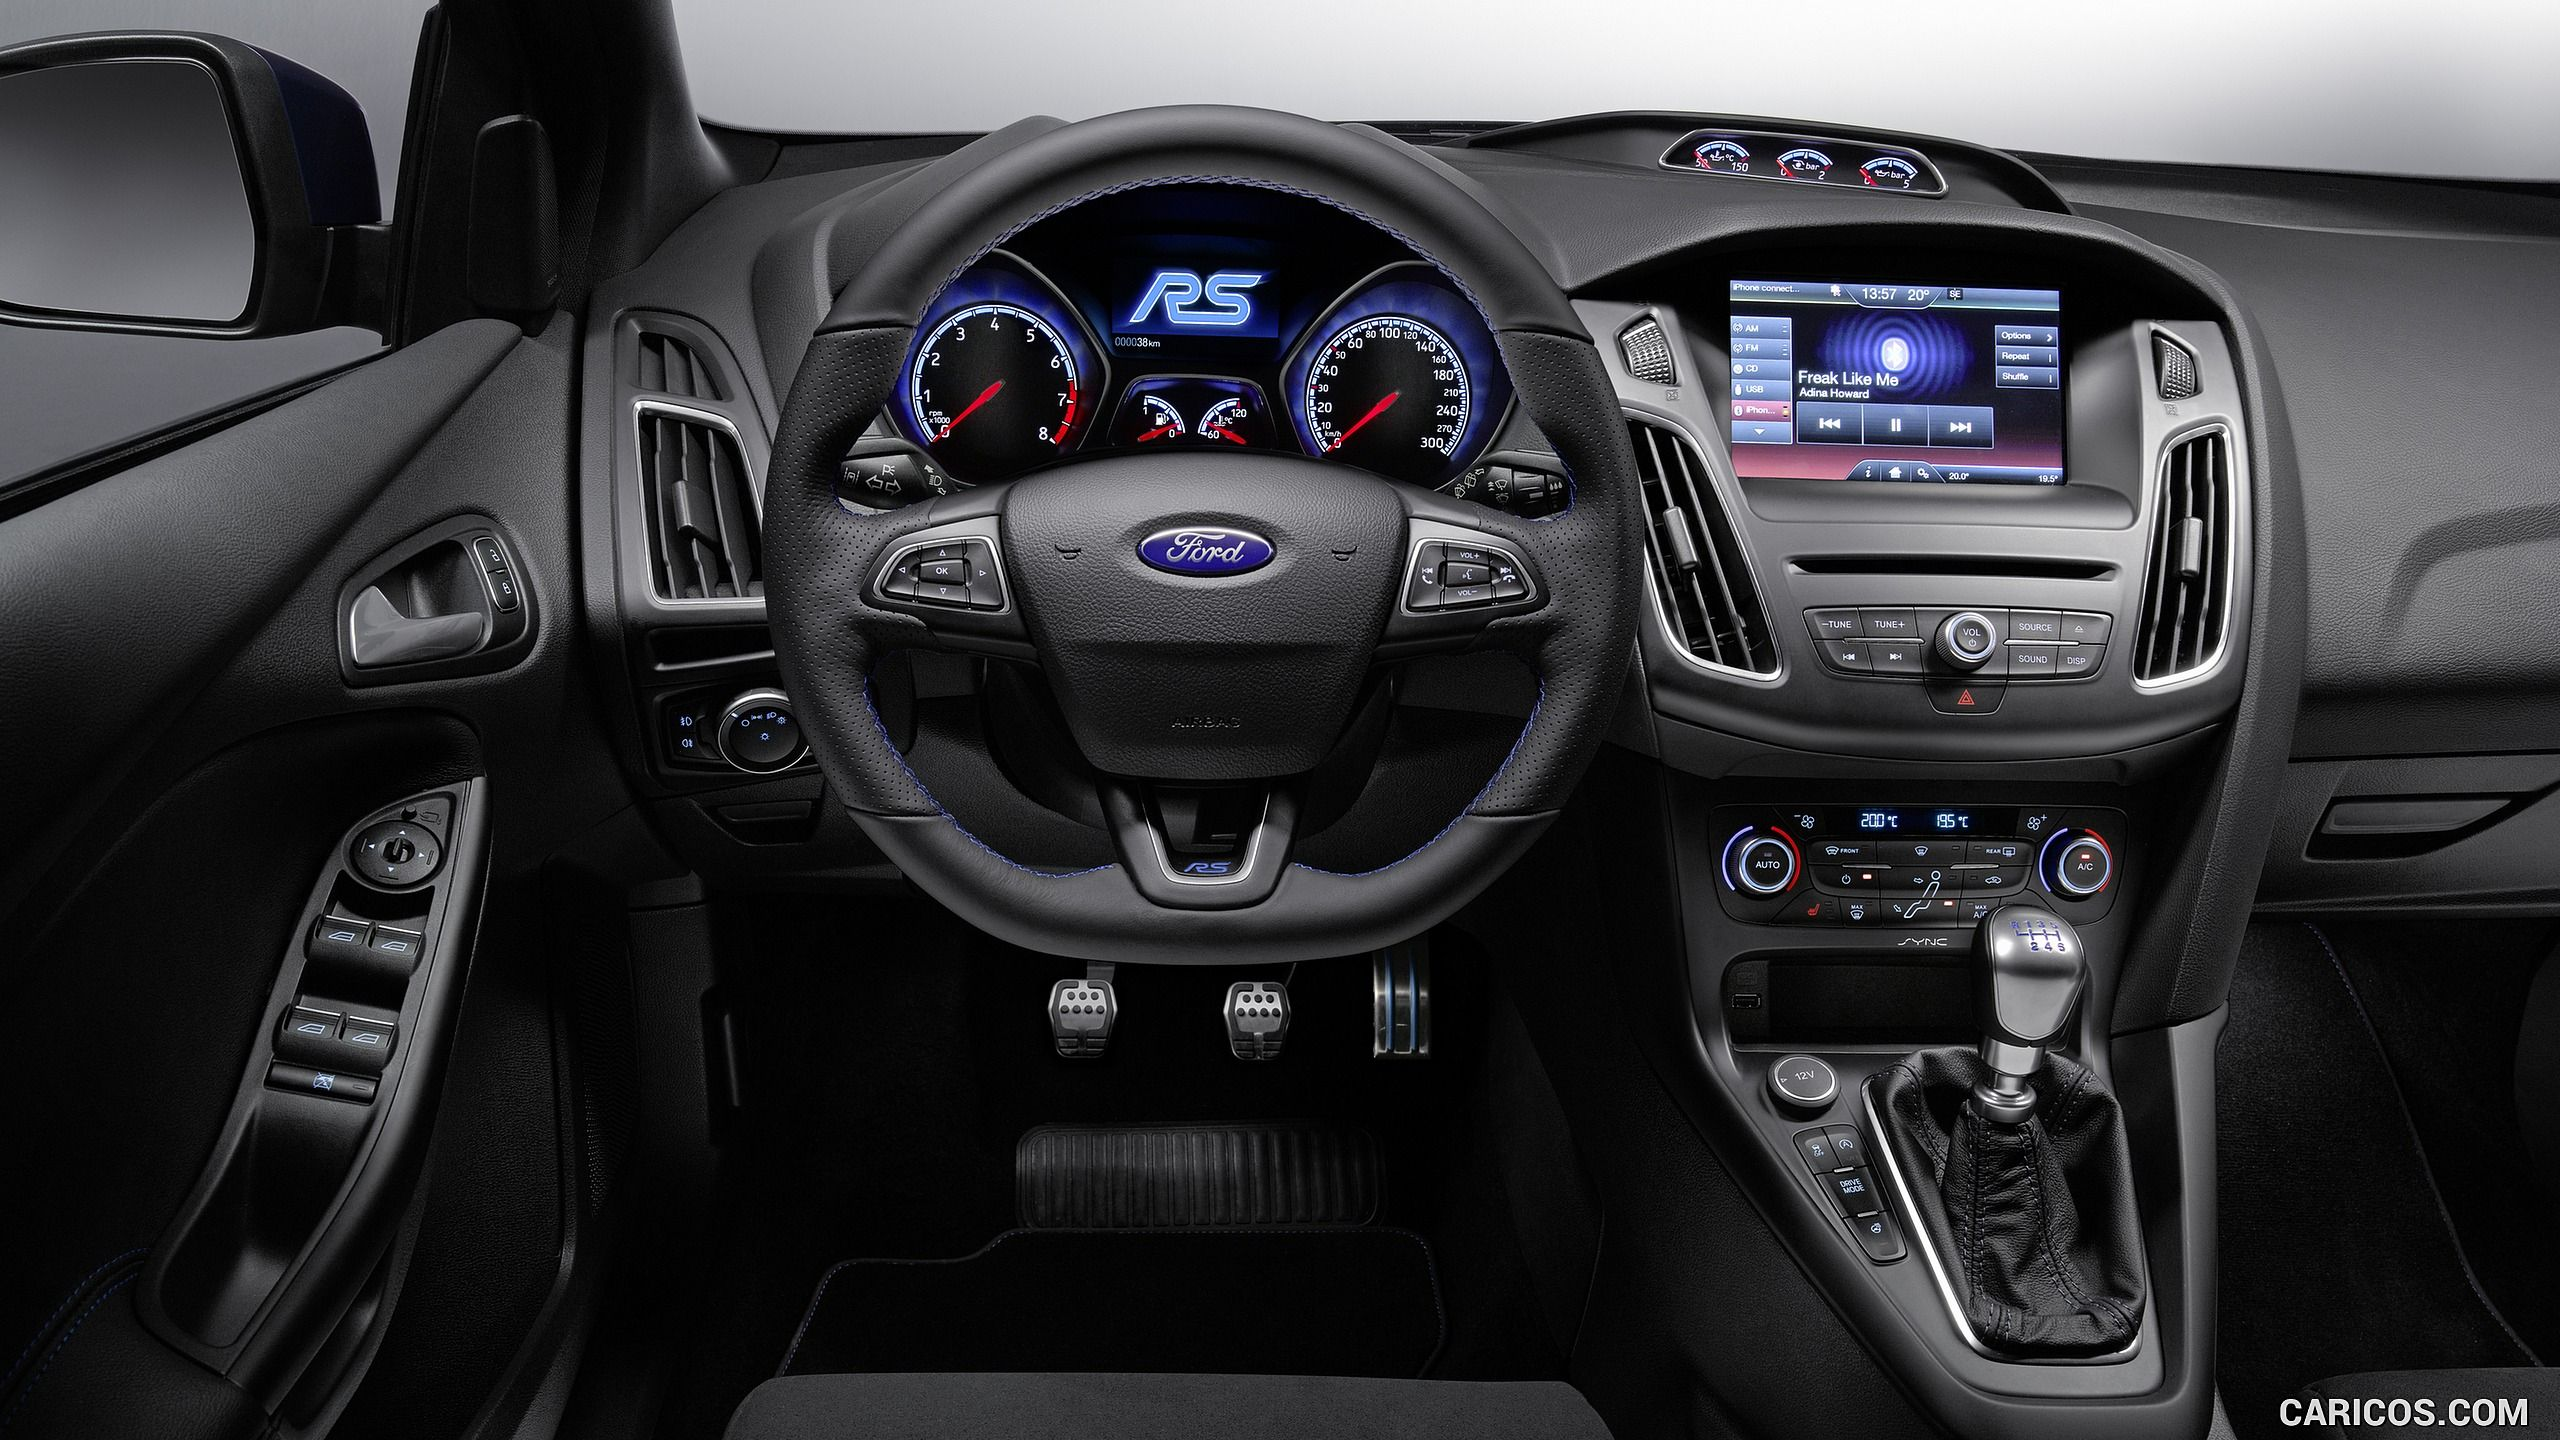 2016 Ford Focus Rs Interior Hd Ford Focus Carros Ford